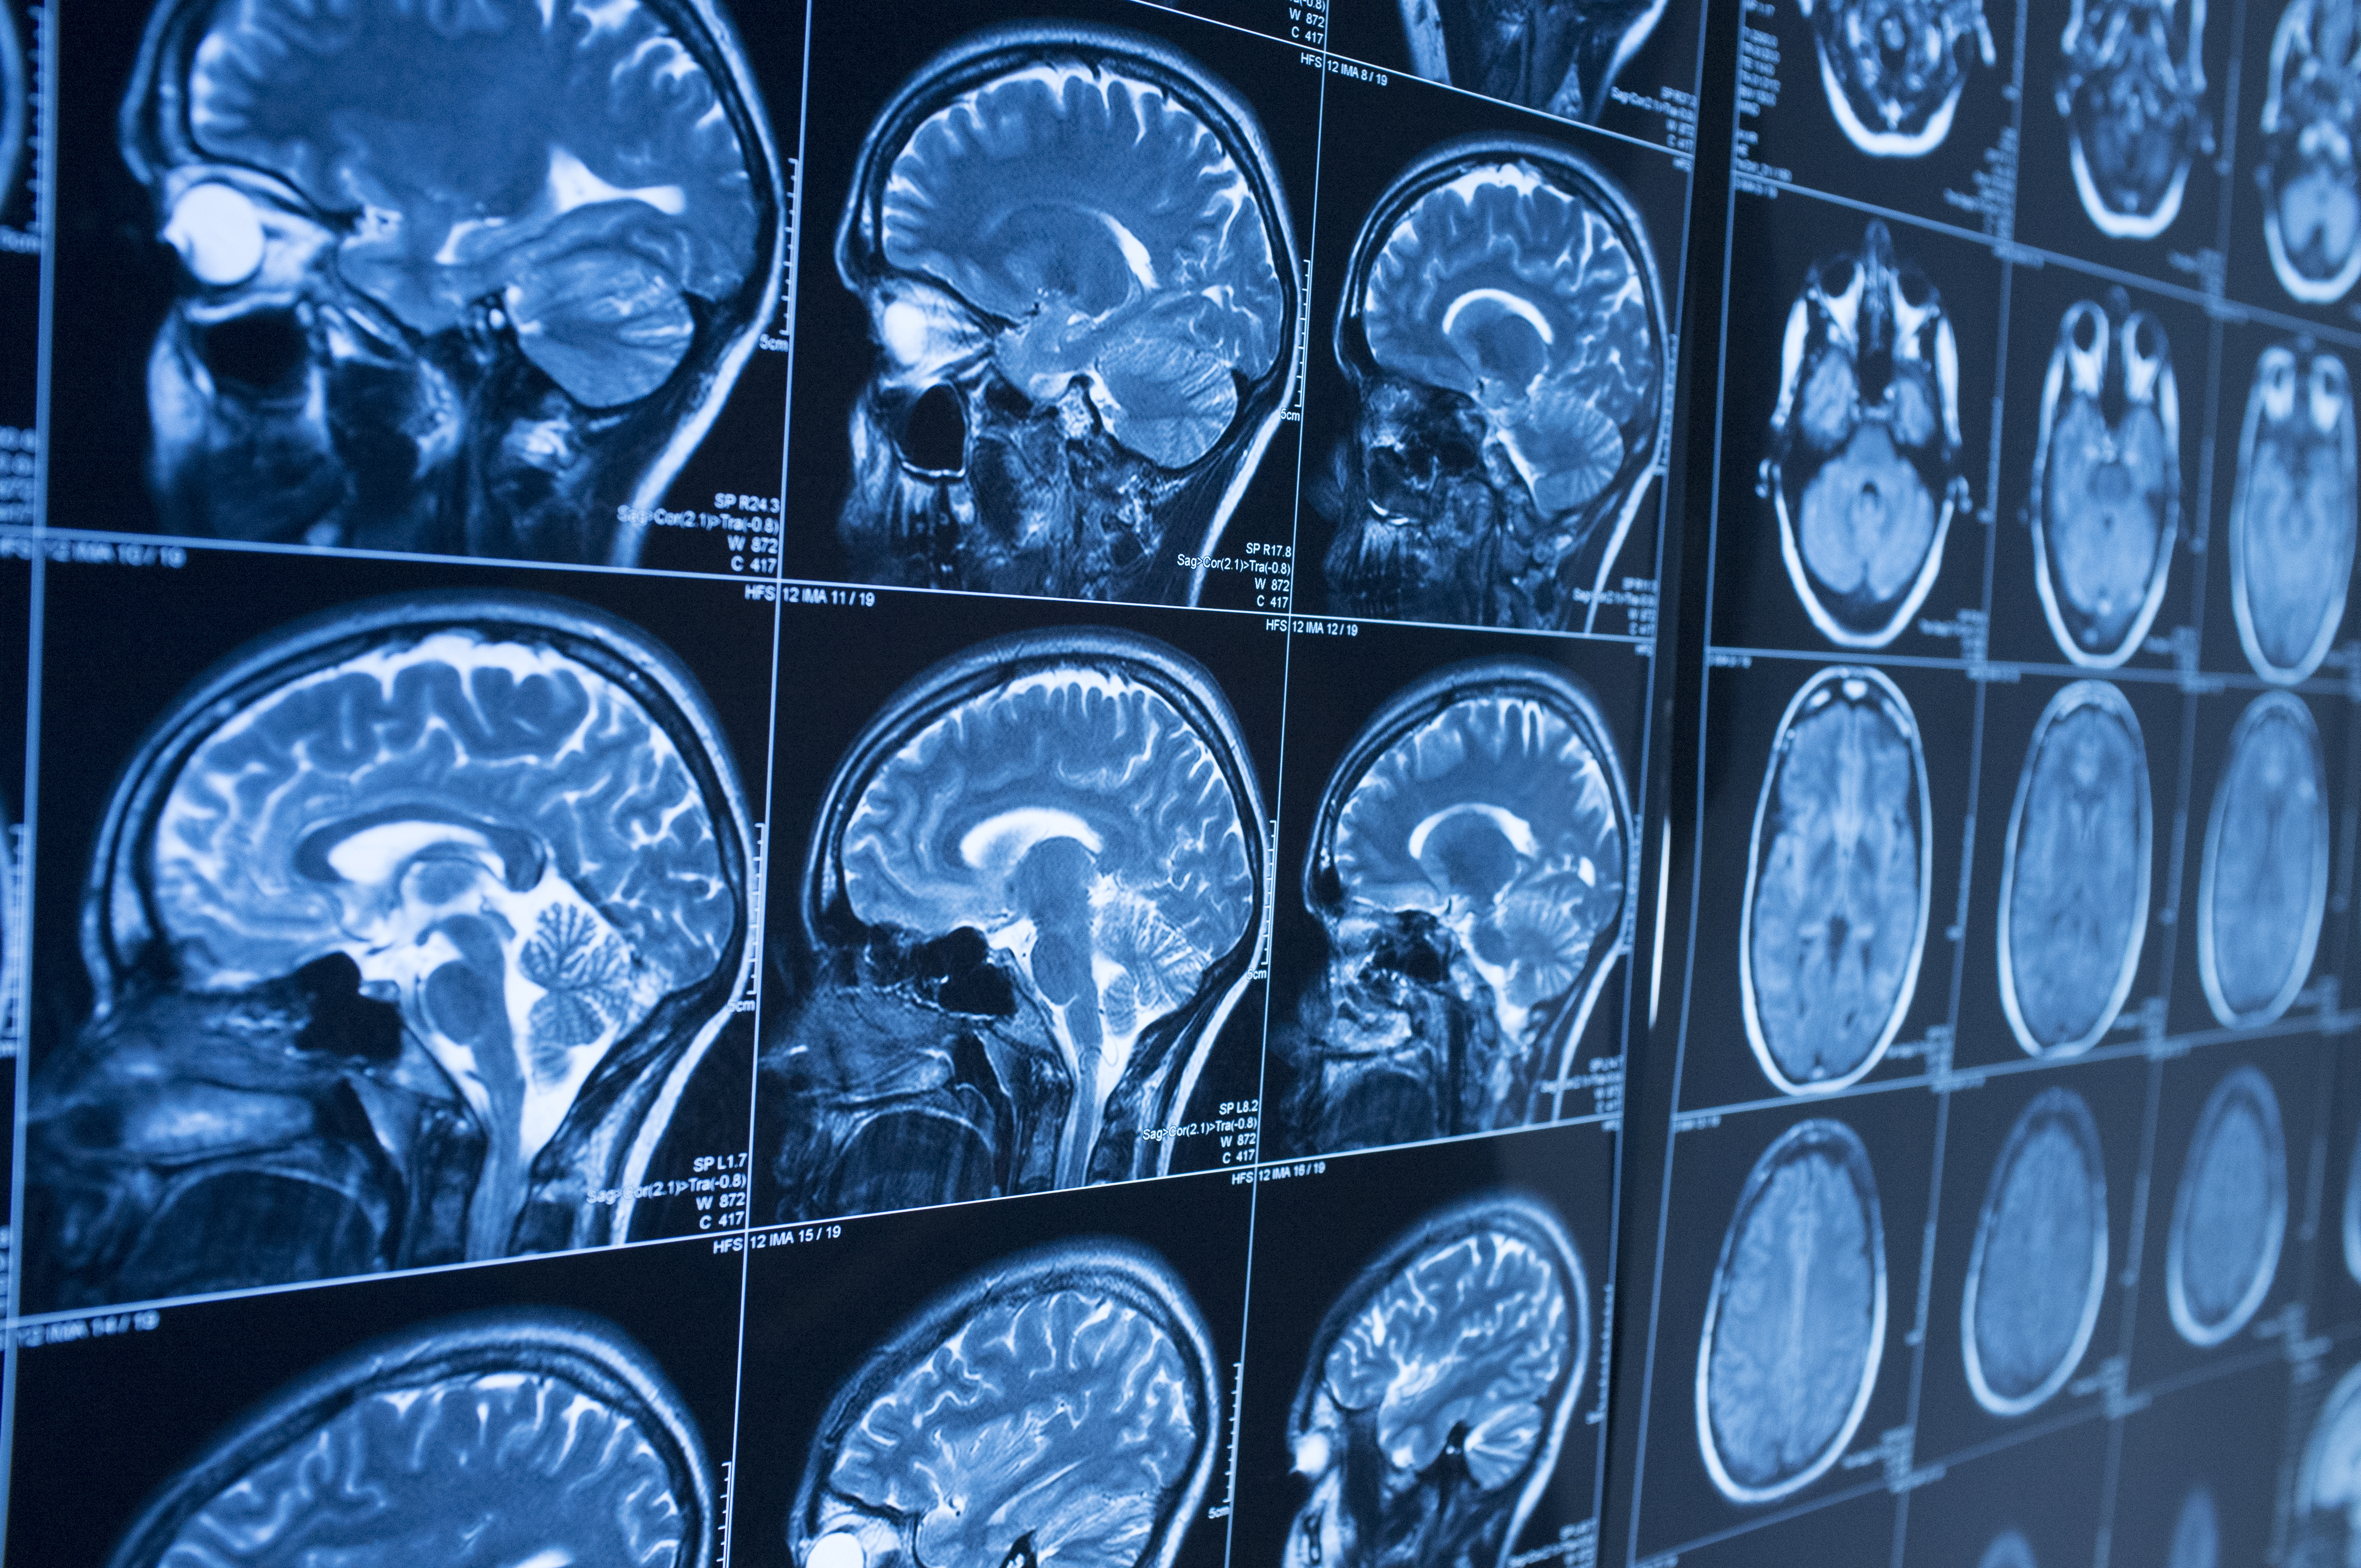 Intra-brainstem connectivity in ME/CFS